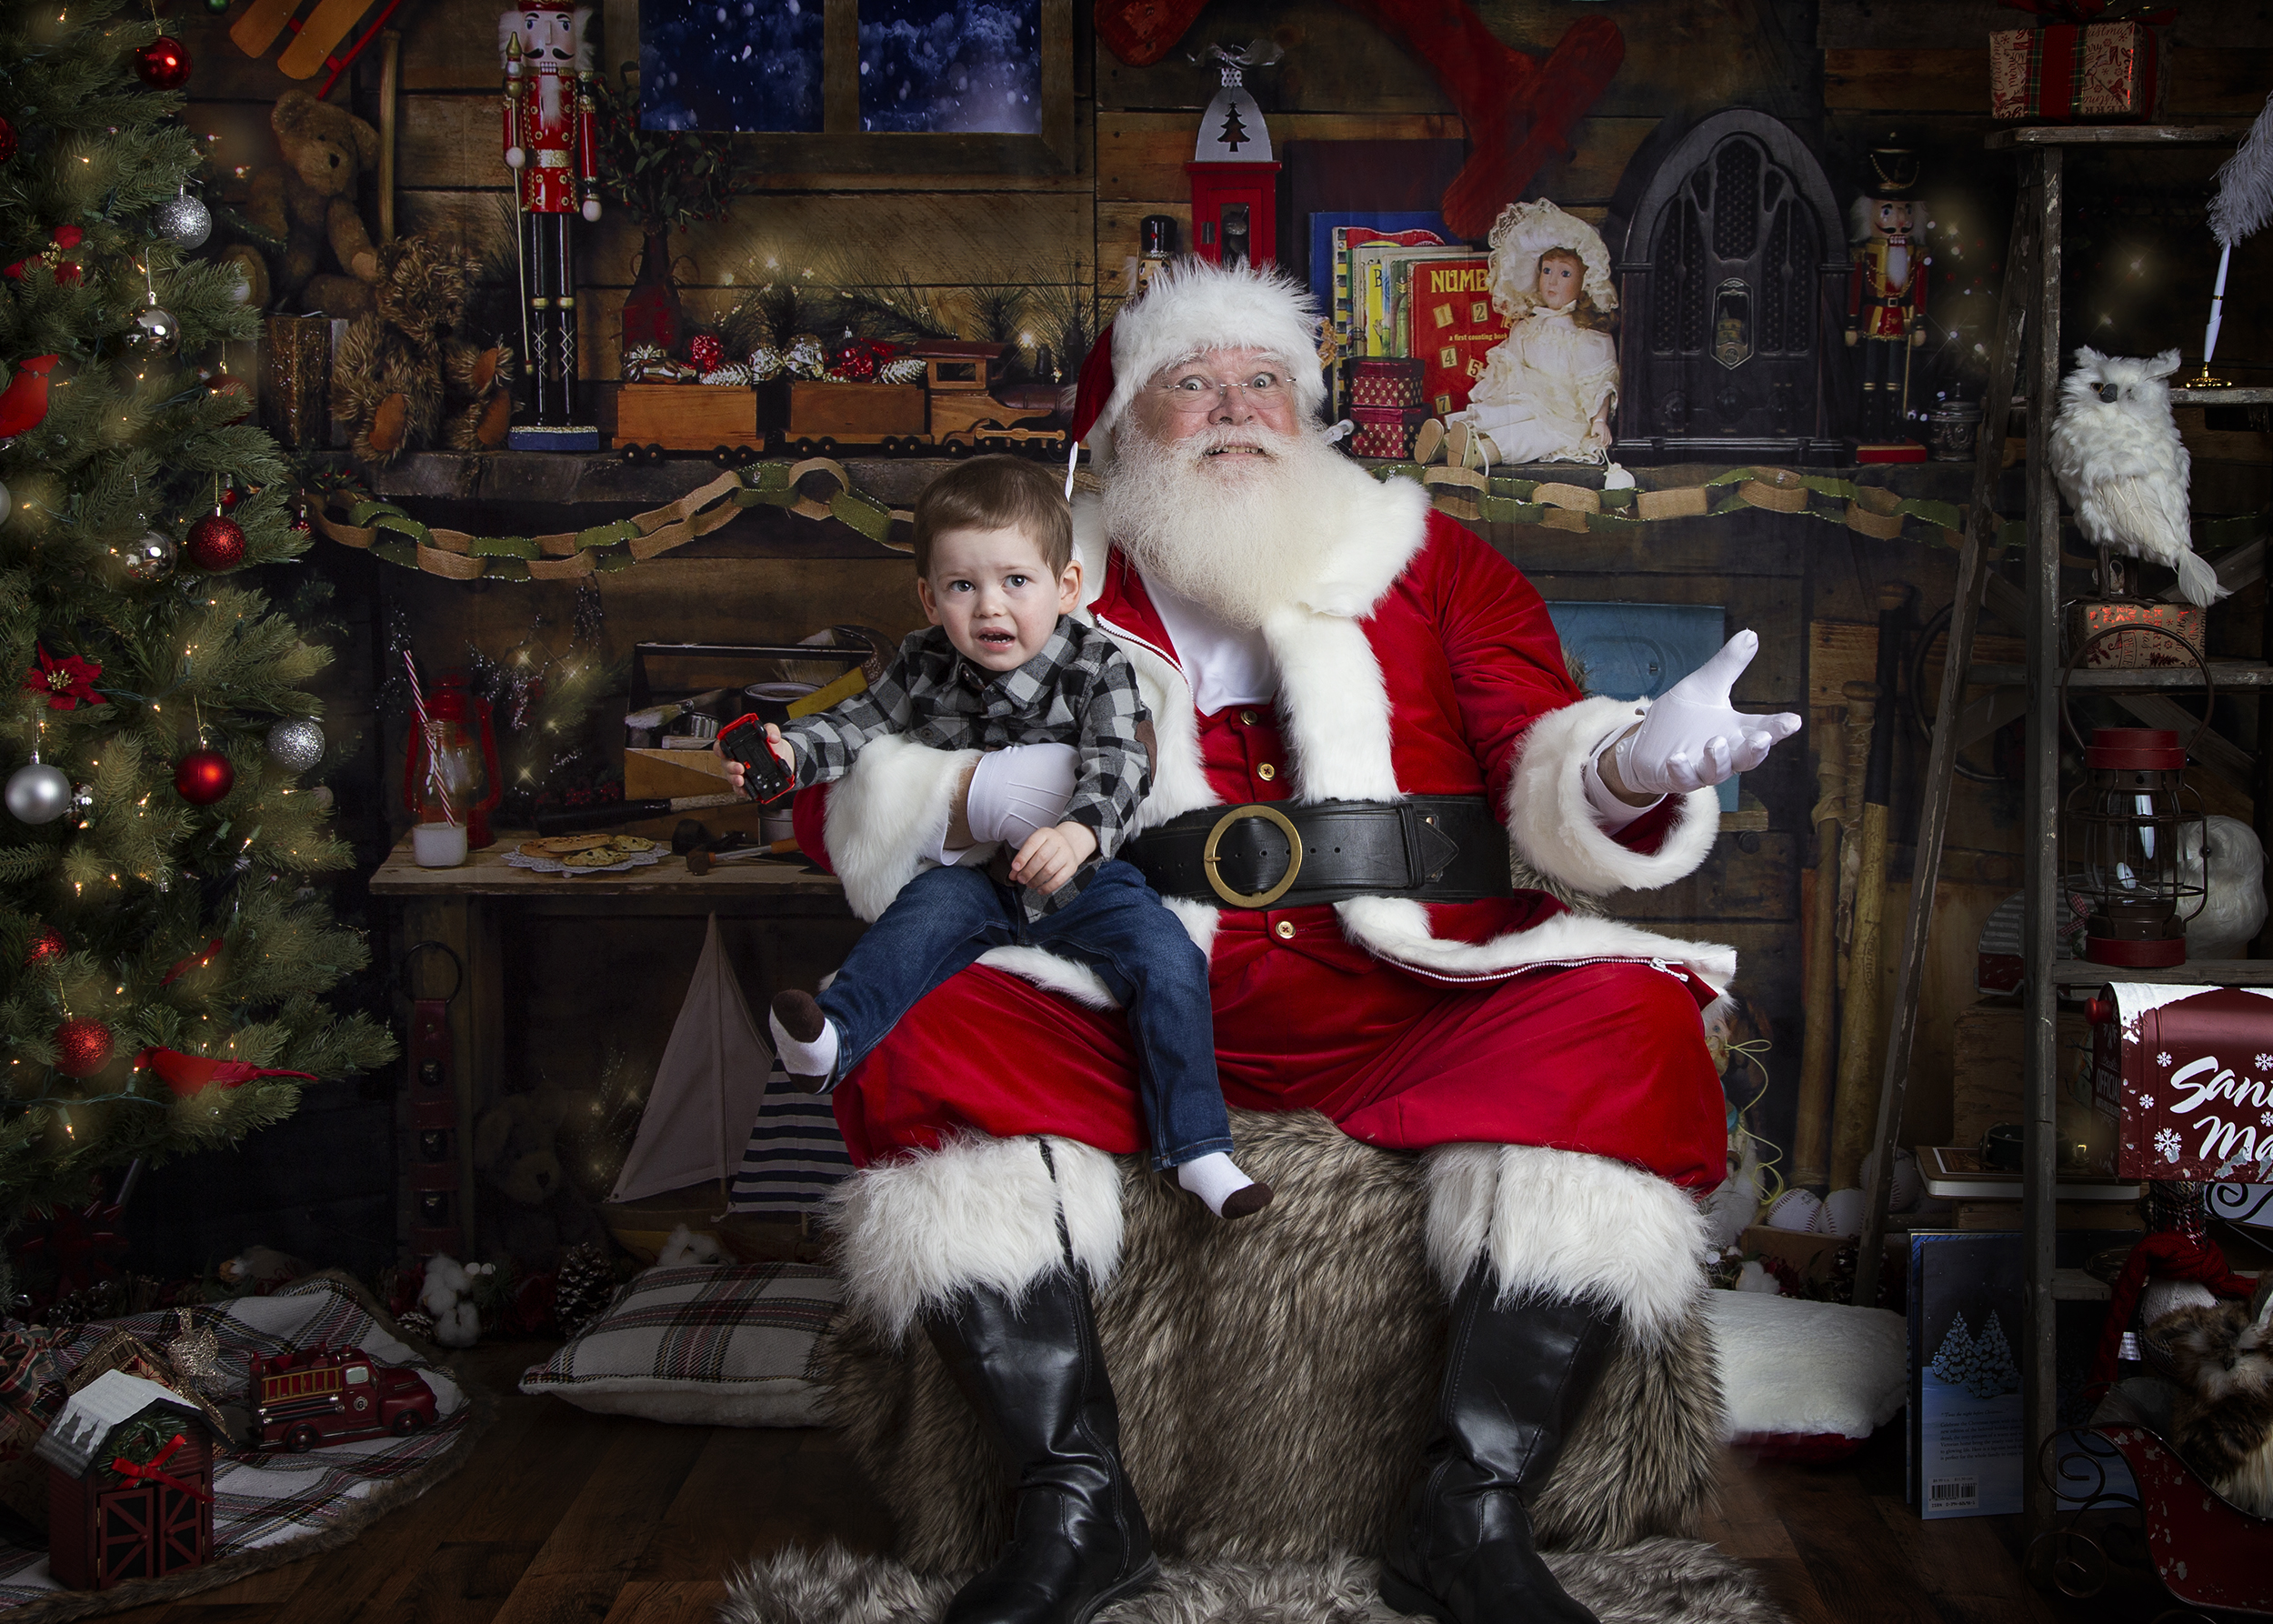 Santa playing with crying child